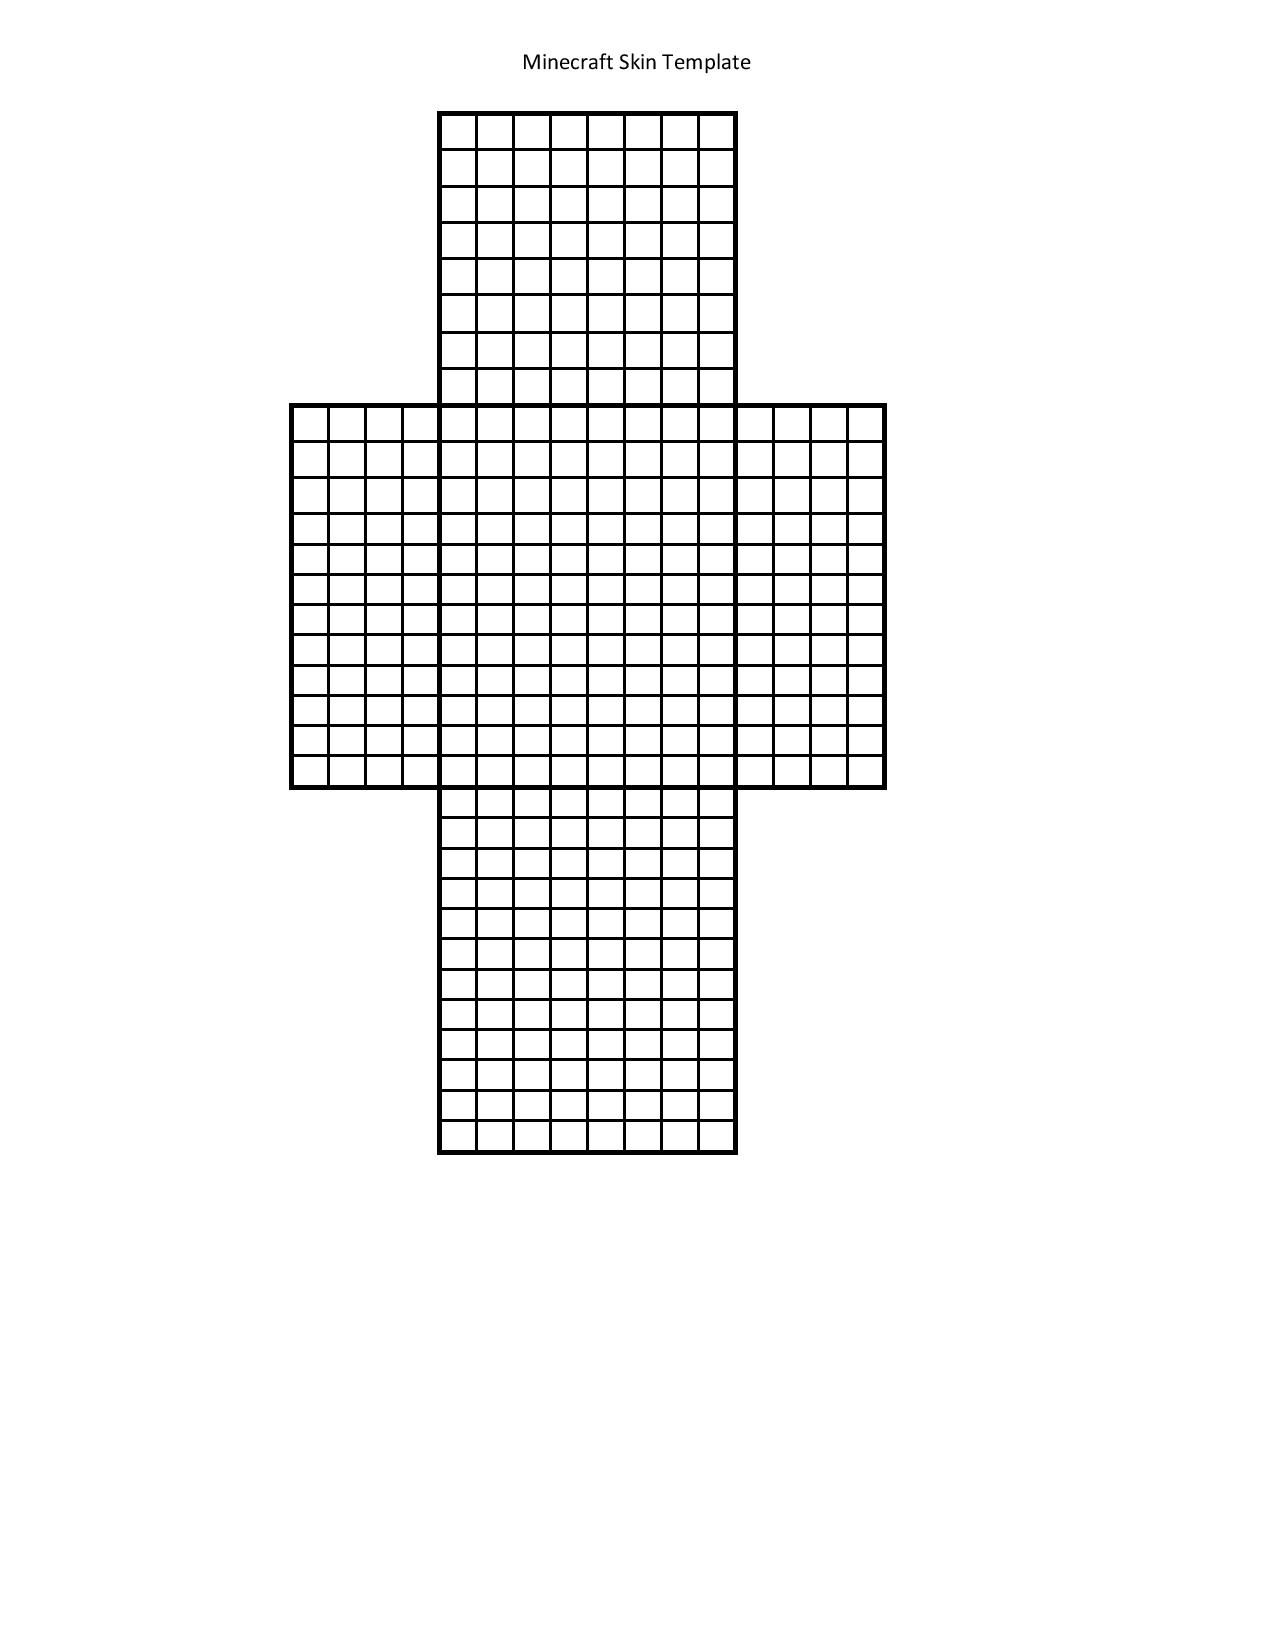 Printable template for Minecraft skin creation. Use markers or